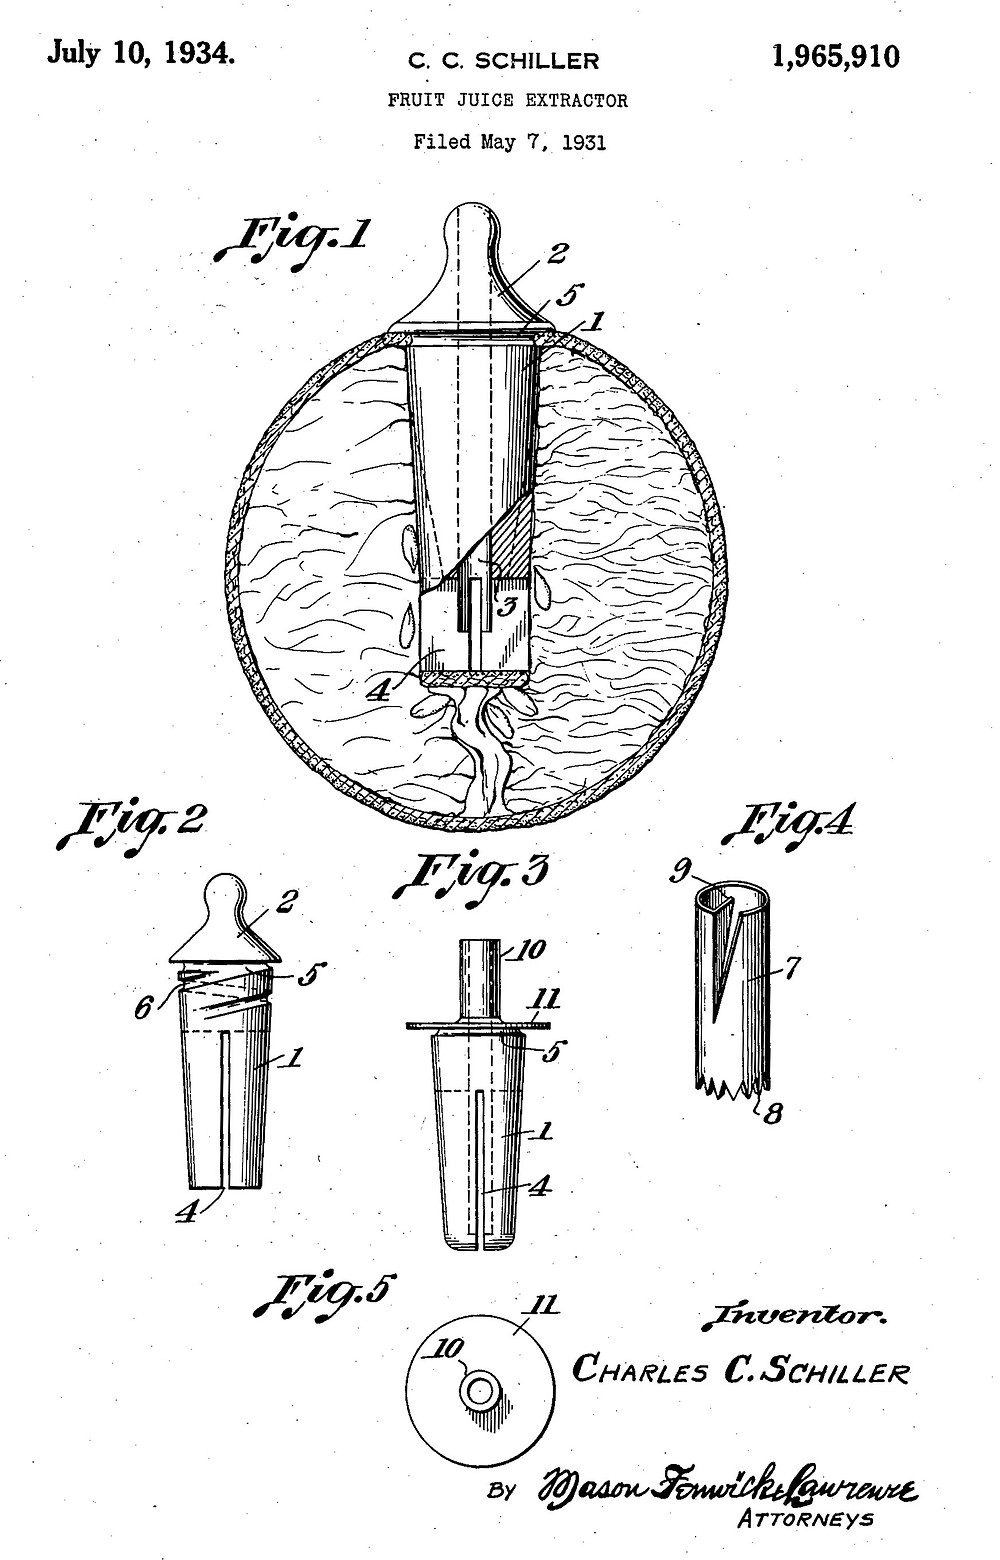 Patent drawing for the Citra Sipper